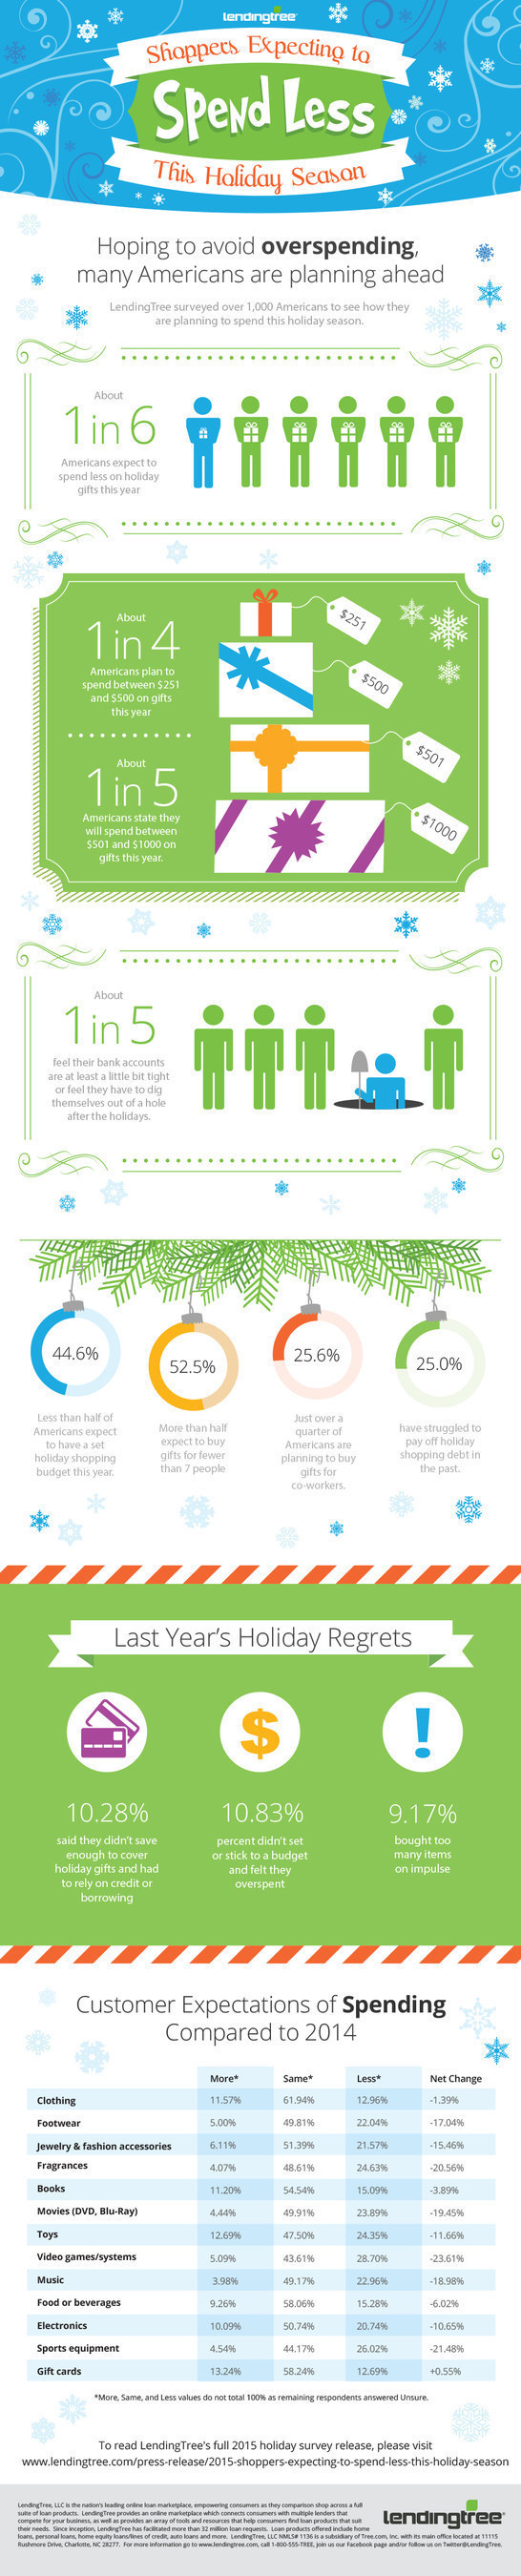 LendingTree Survey finds 1 in 4 Americans Struggle to Pay off Holiday Shopping Debt